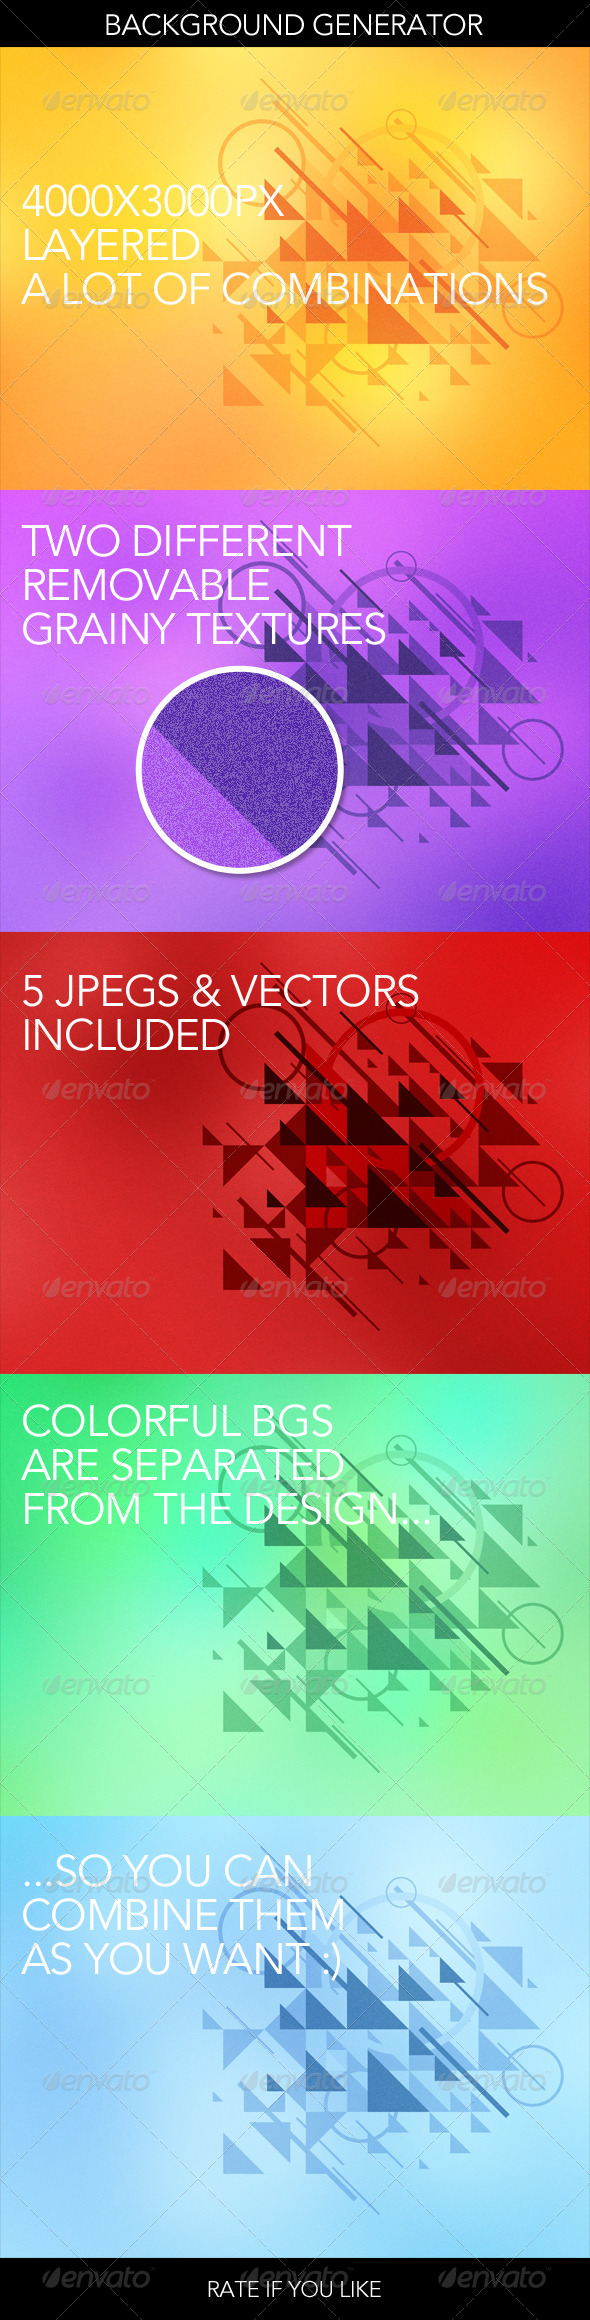 Abstract background graphics generator abstract backgrounds abstract background graphics generator psd template only available here voltagebd Image collections